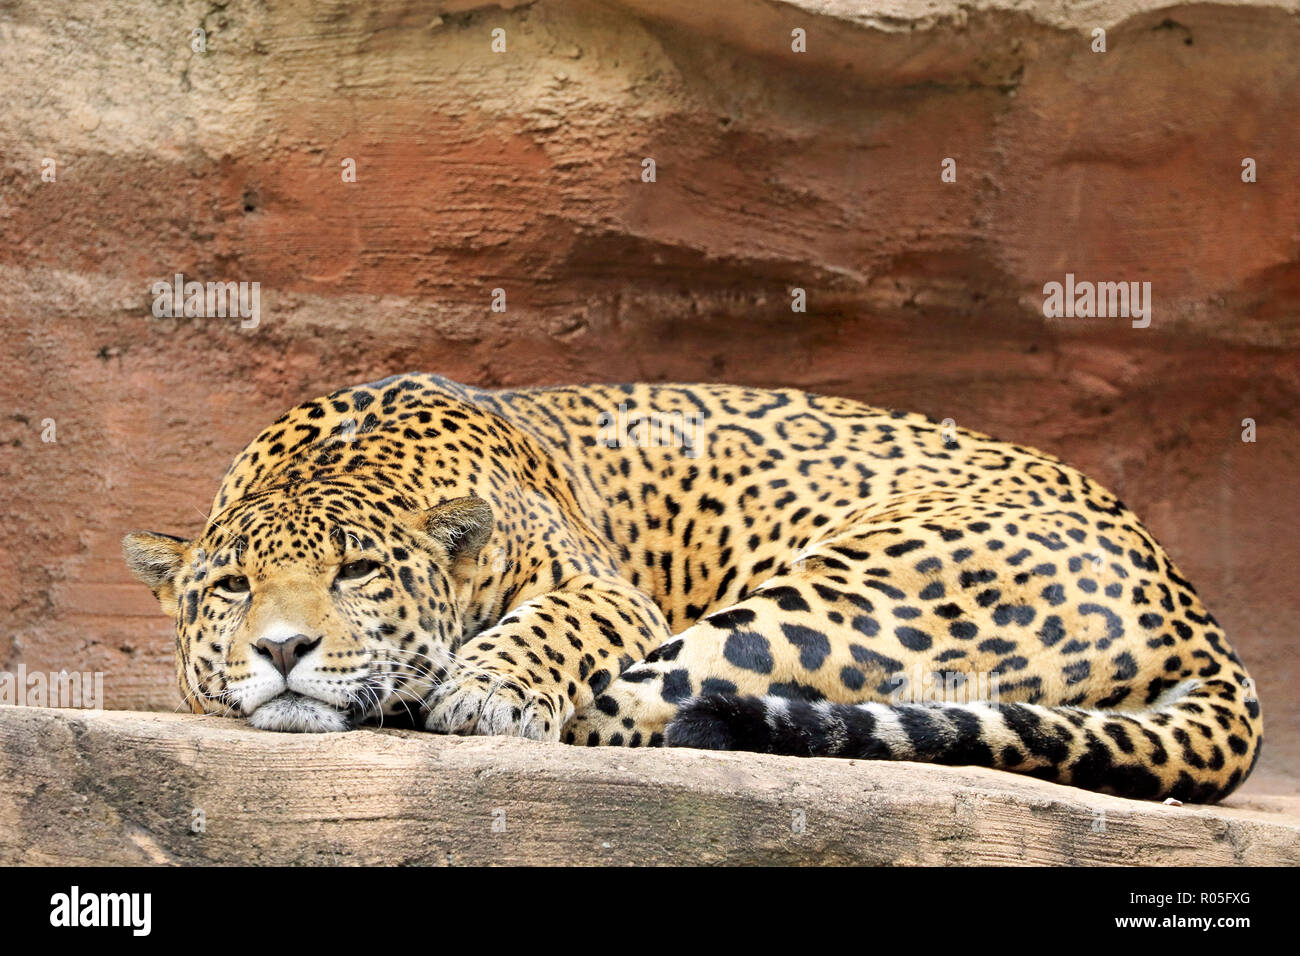 Jaguar, Panthera onca - Stock Image